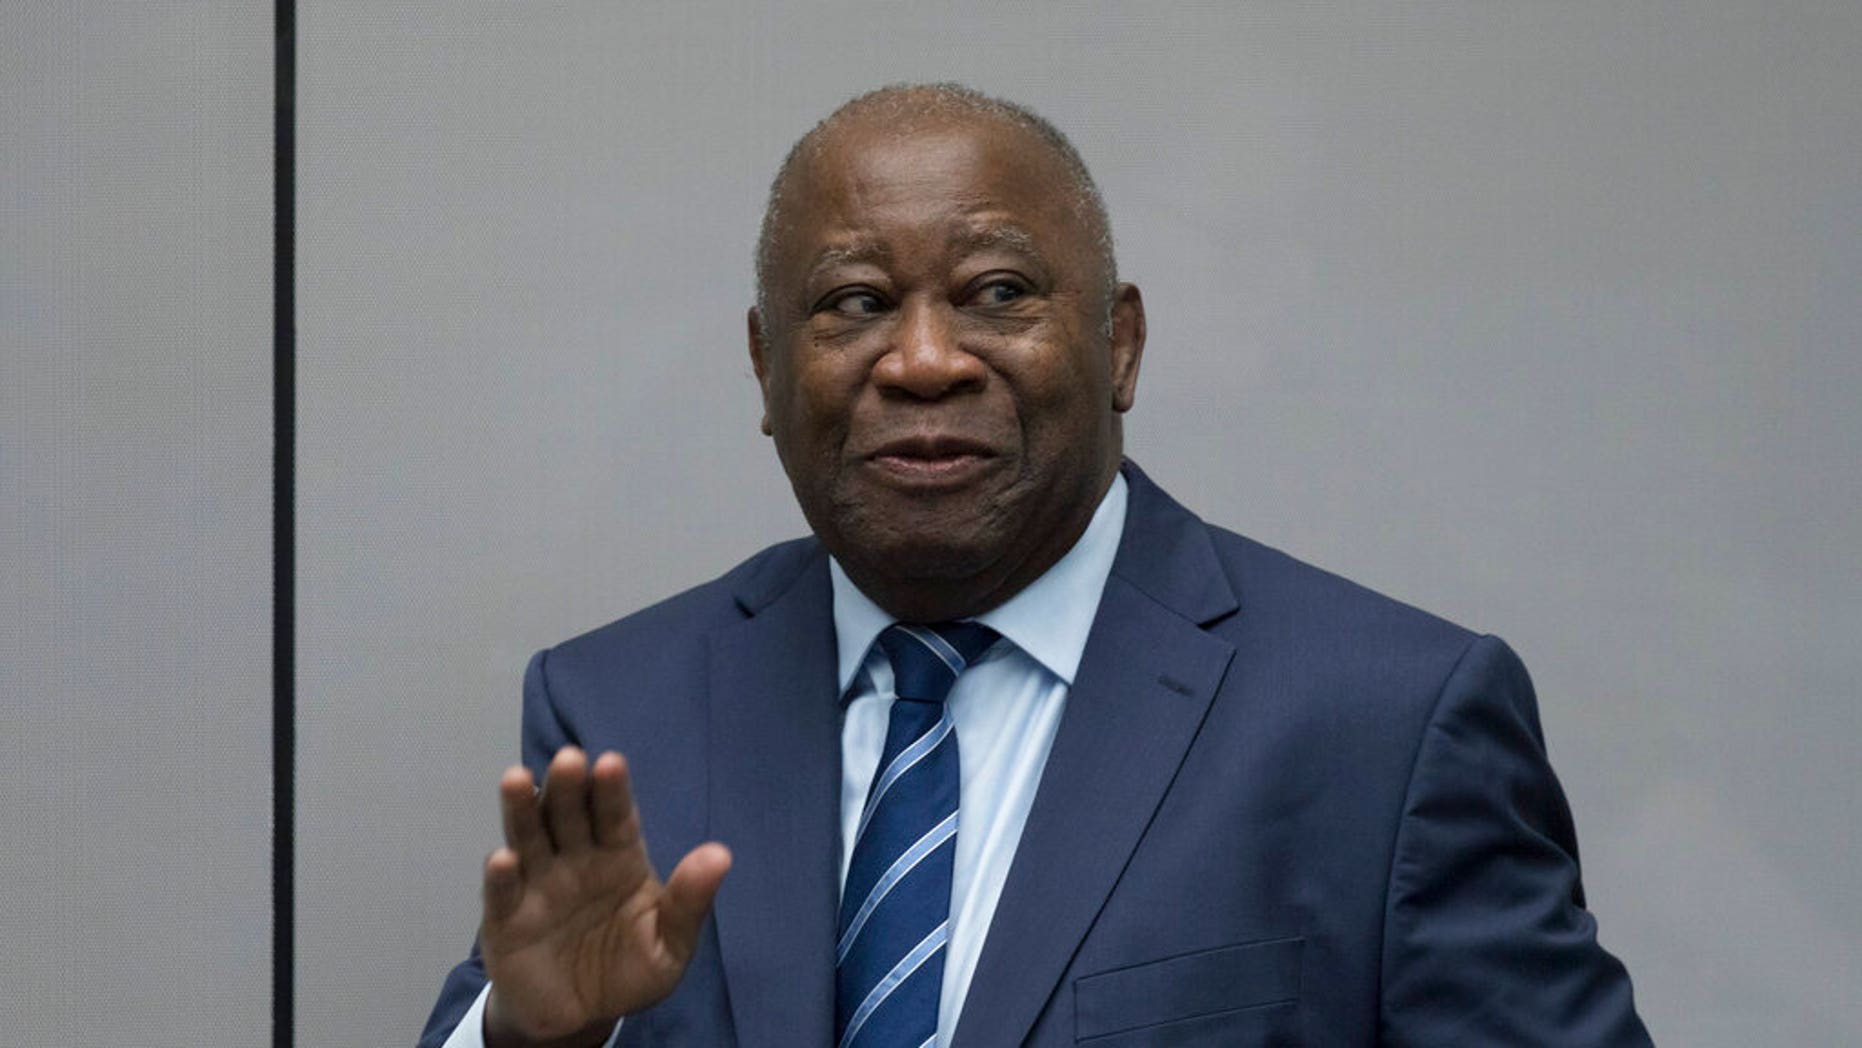 Former Ivory Coast President Laurent Gbagbo enters the courtroom of the International Criminal Court in The Hague, Netherlands, Tuesday, Jan. 15, 2019